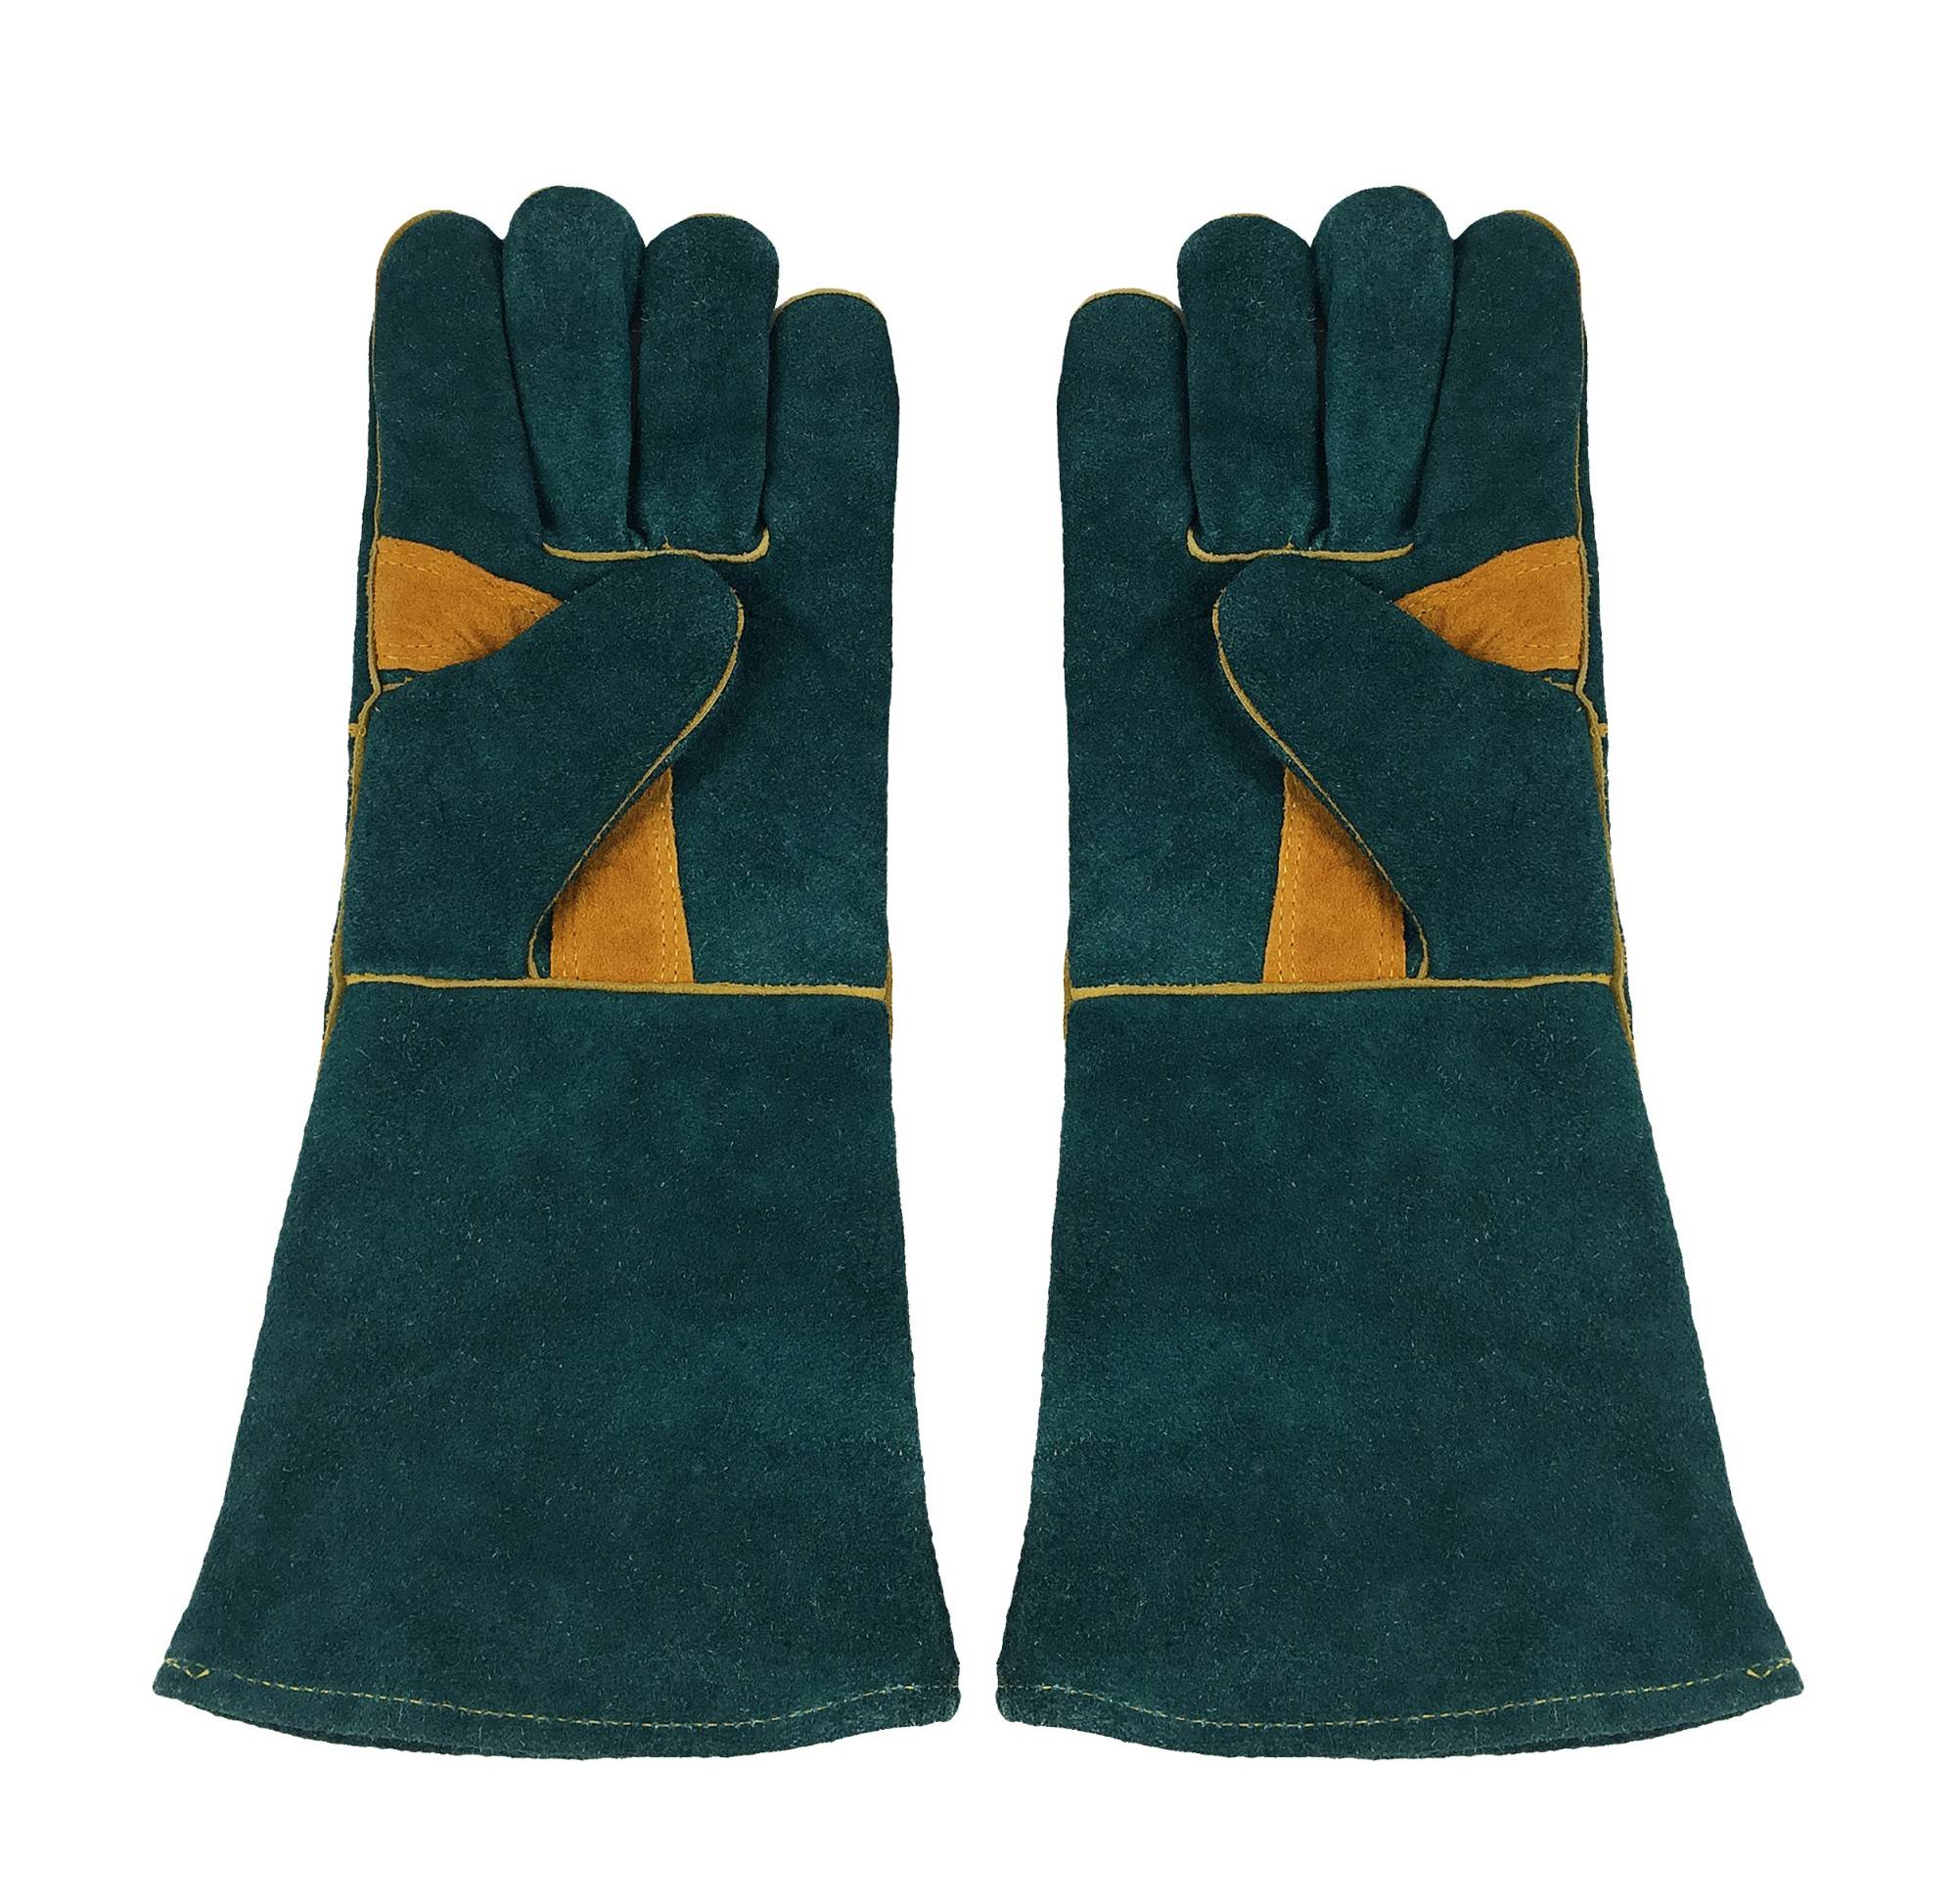 KIM YUAN Leather Welding Gloves Heat/Fire Resistant, Perfect for Welder/Oven/Fireplace/Animal Handling/BBQ -GREEN-